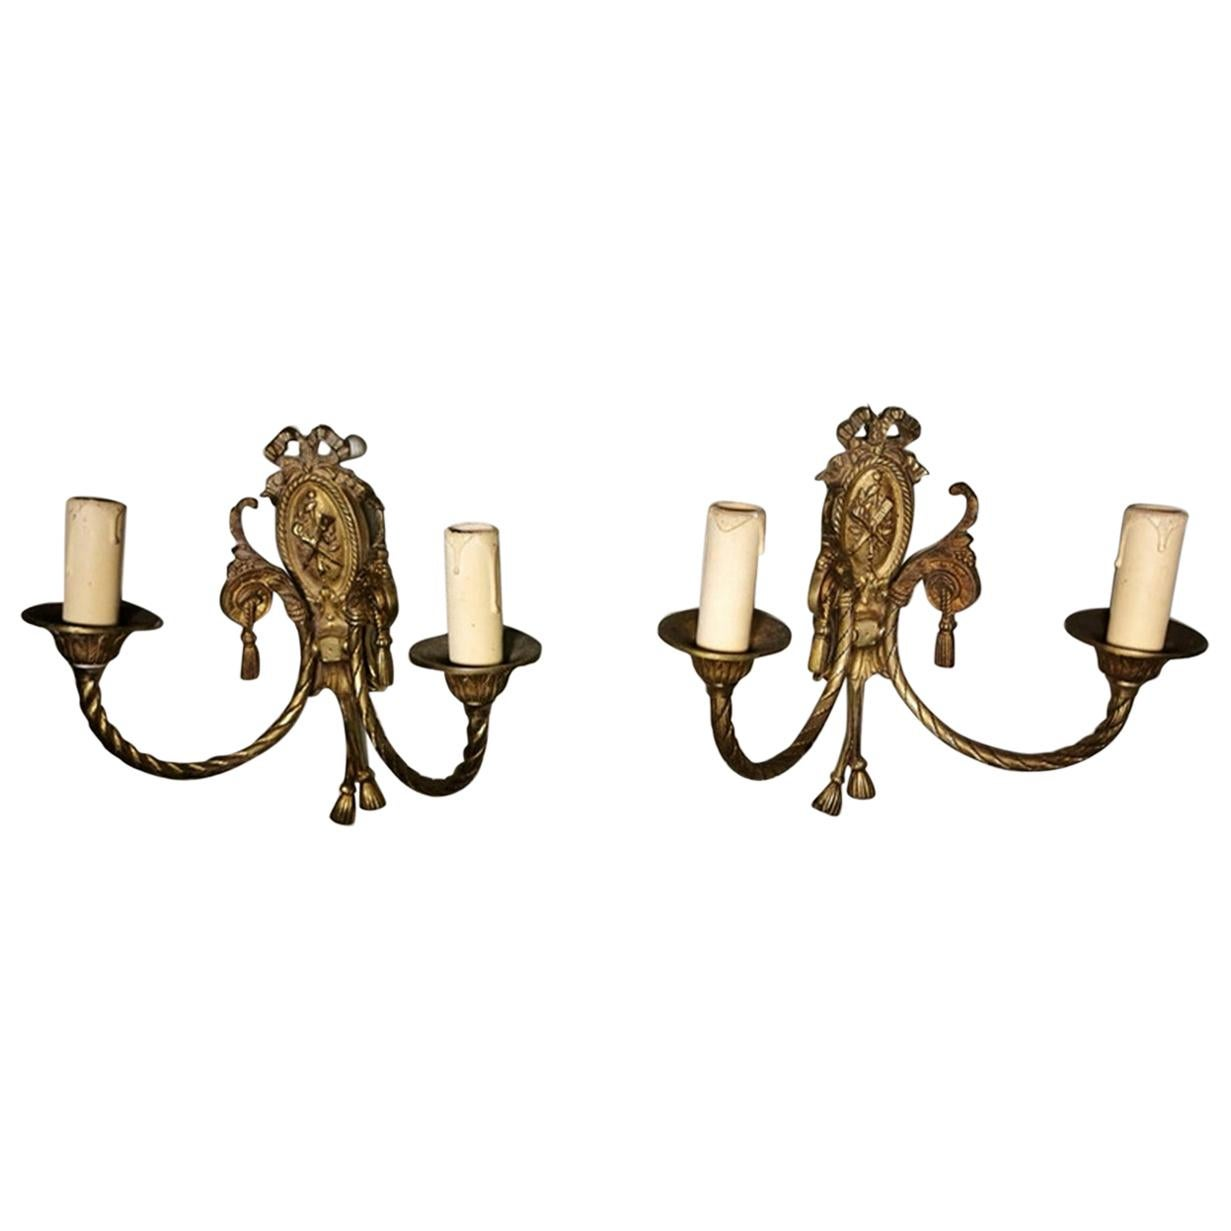 Louis XVI Style Pair of French Wall Sconces in Gilt Bronze